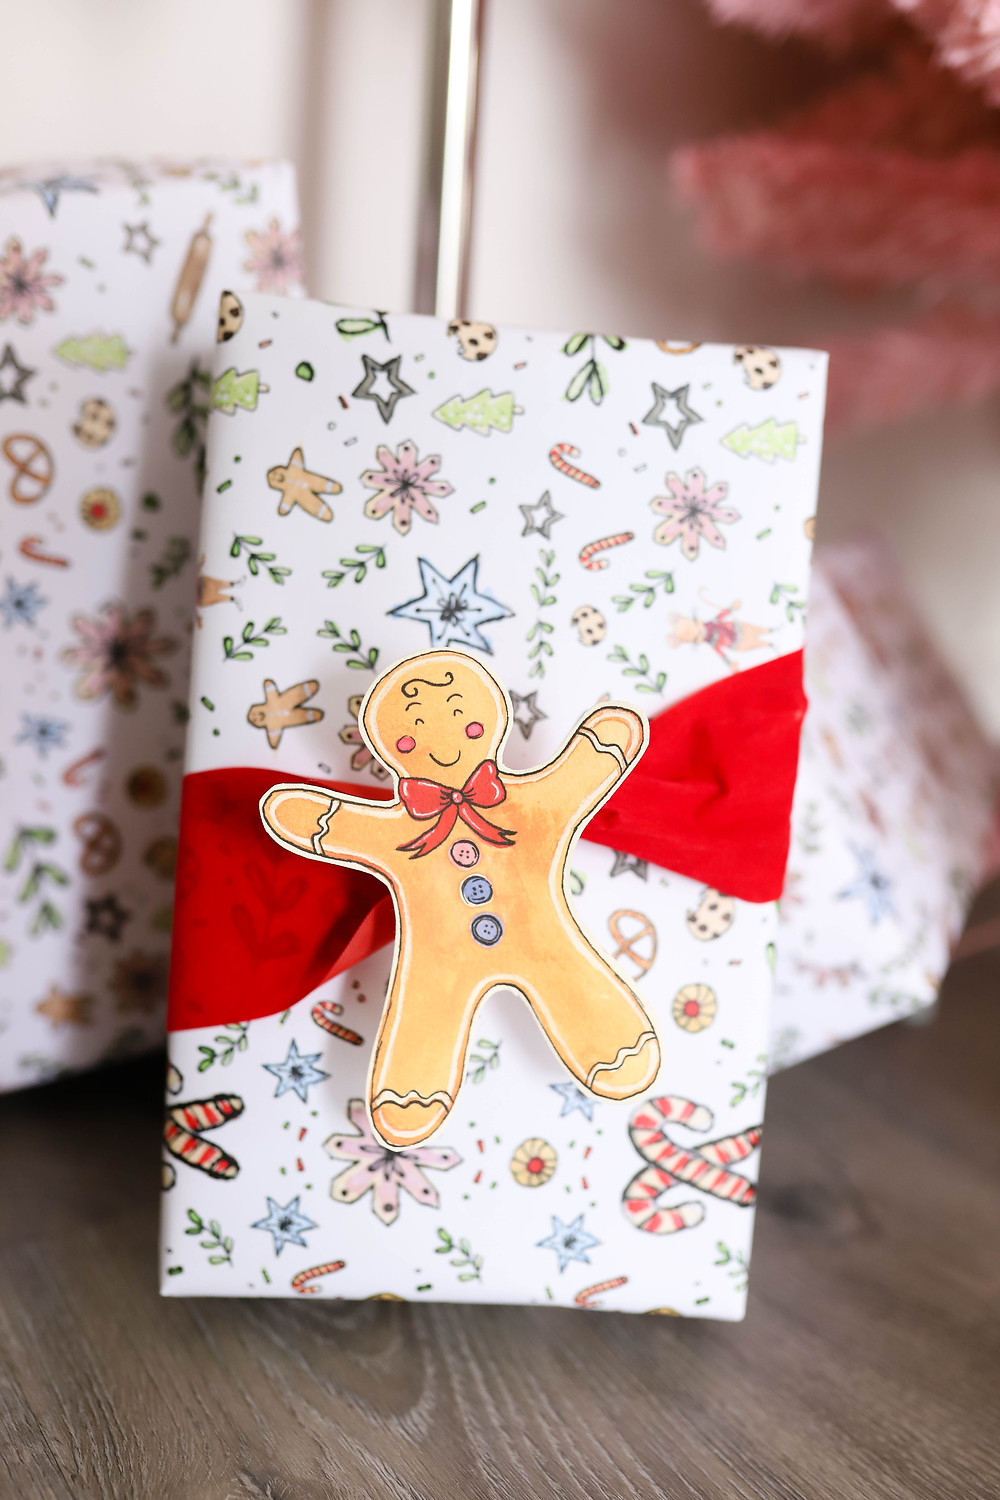 A Christmas present wrapped with gingerbread men and festive modern wrapping paper.